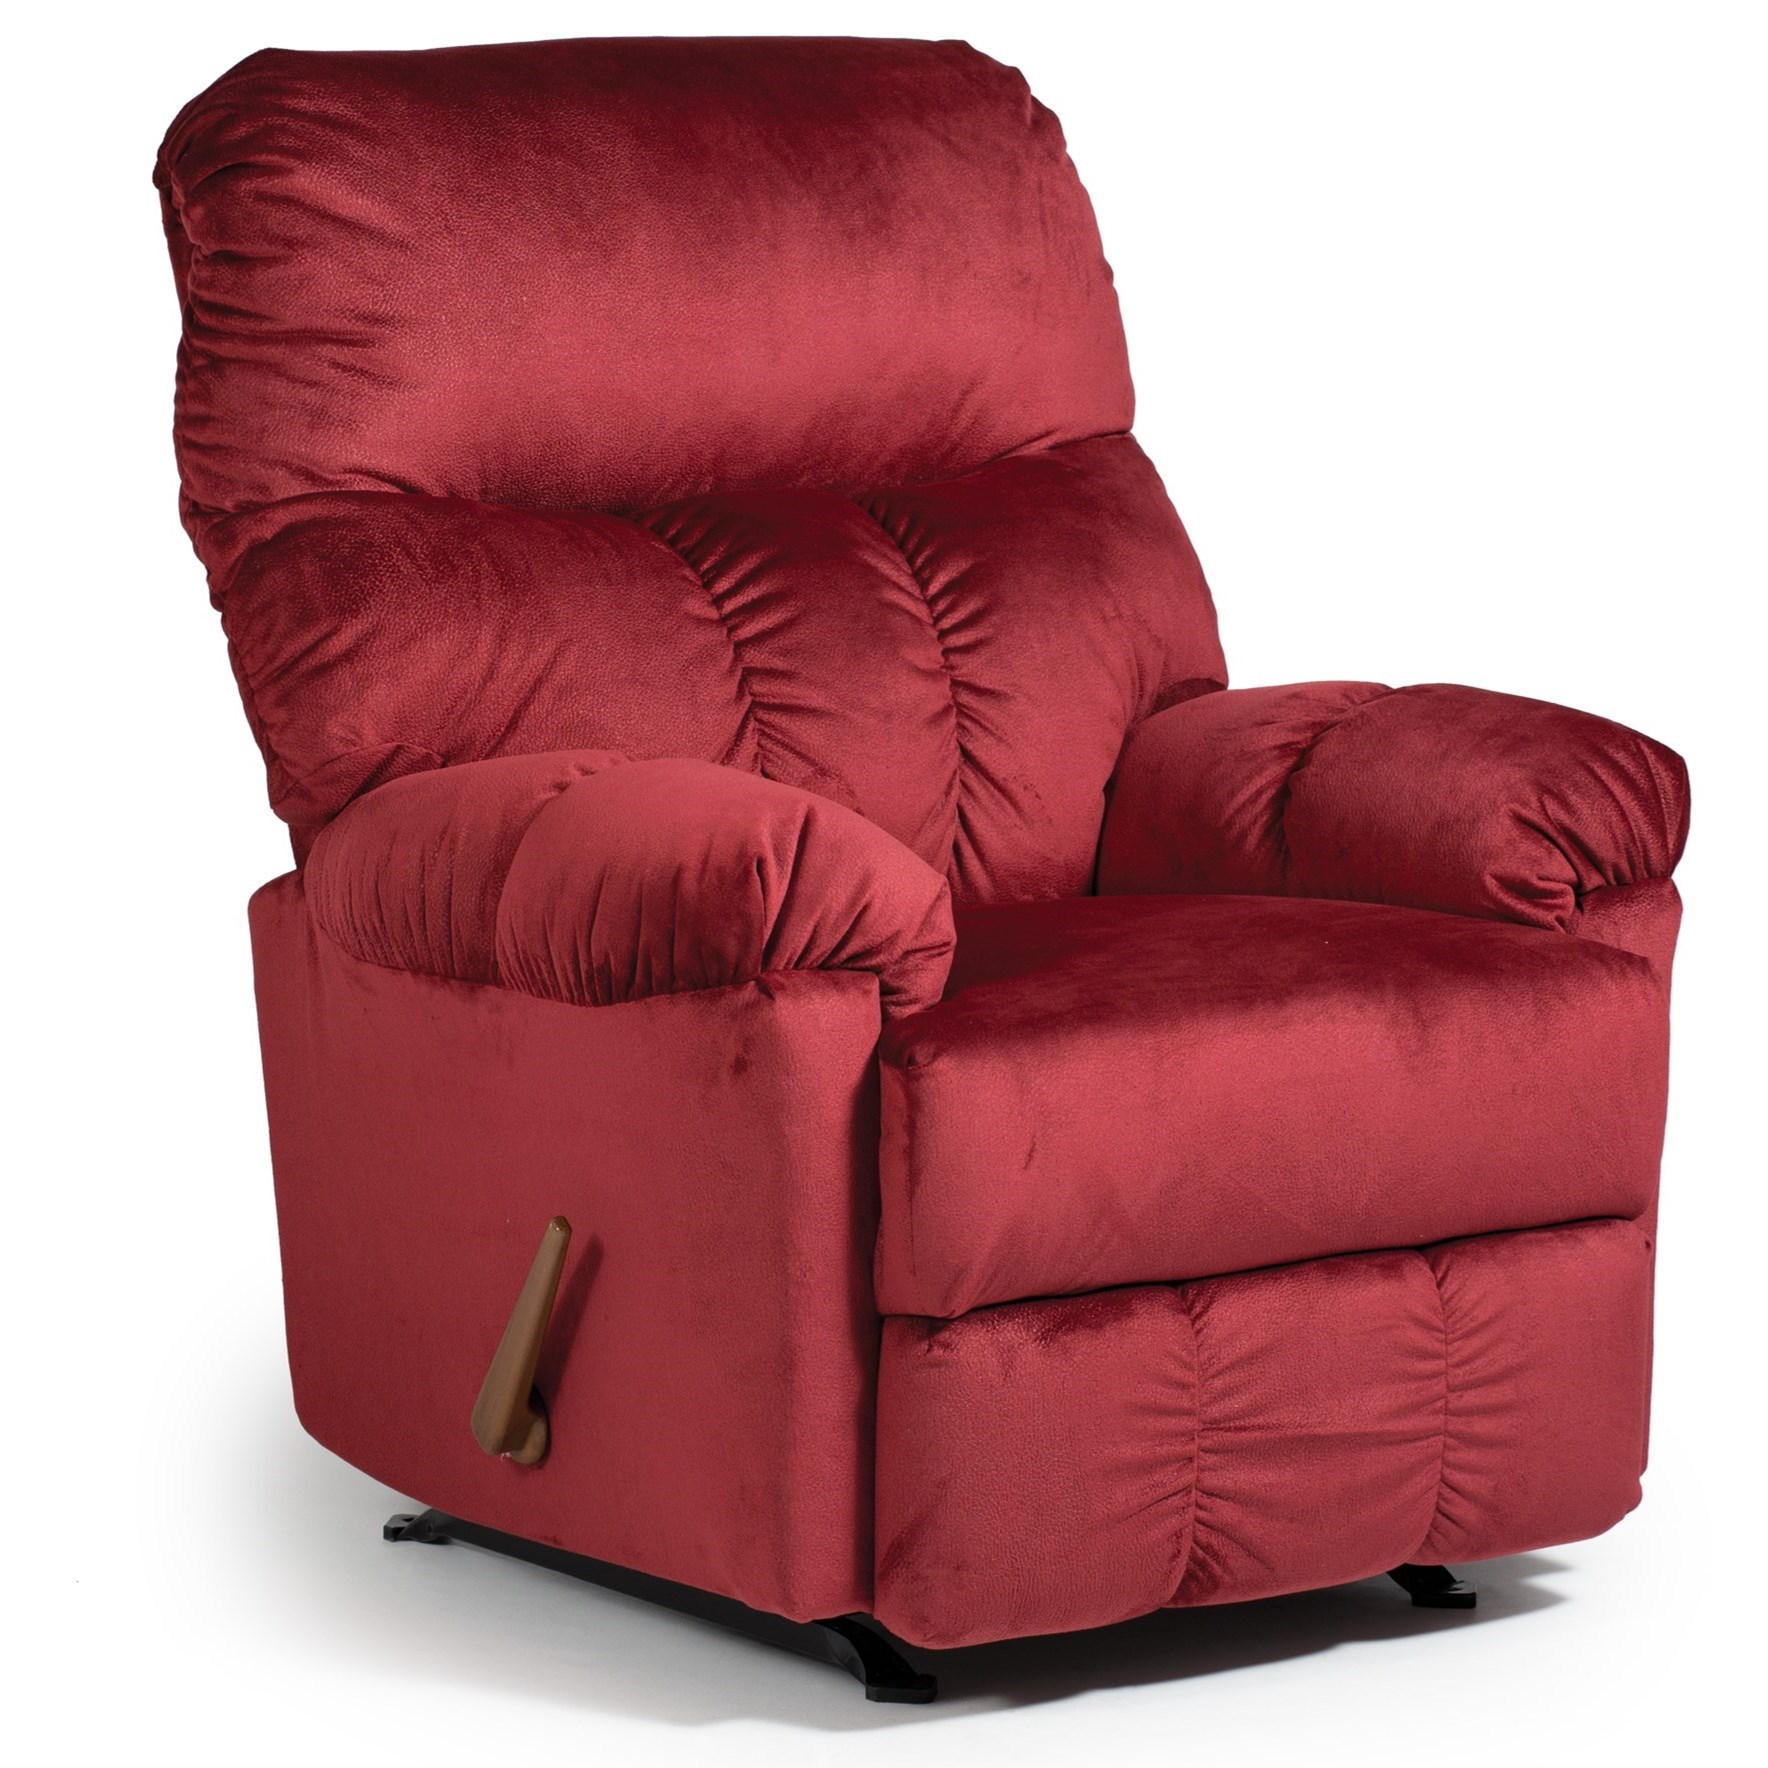 Best Home Furnishings Ares Ares Recliner - Item Number: 2MW34-21238